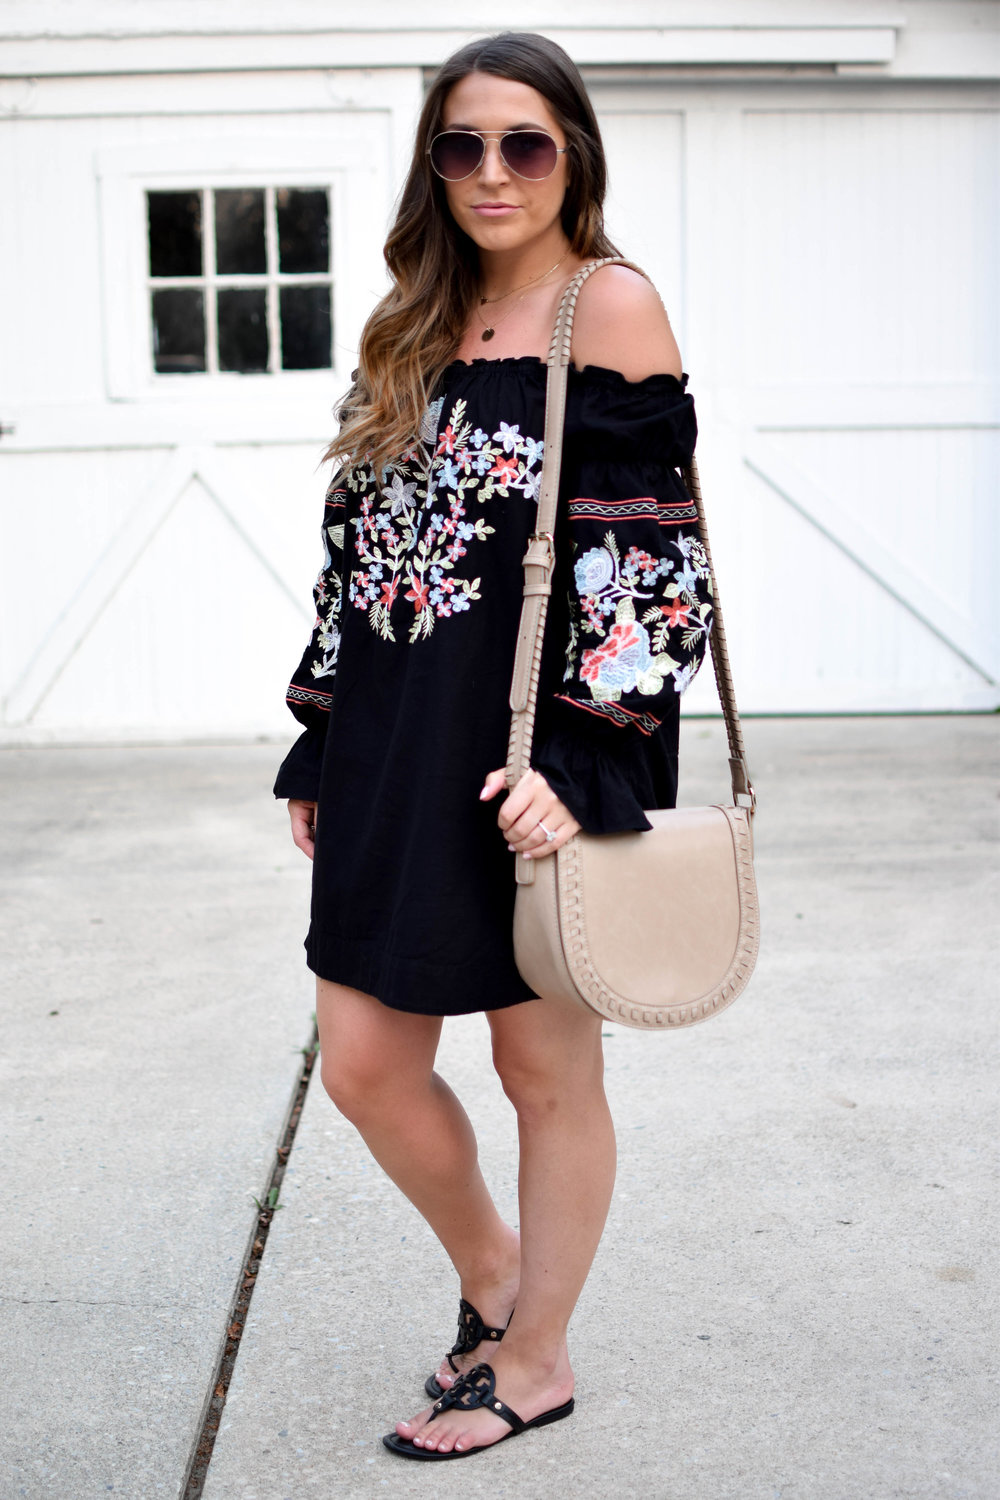 free people dress / fall transition dress / fall outfit idea